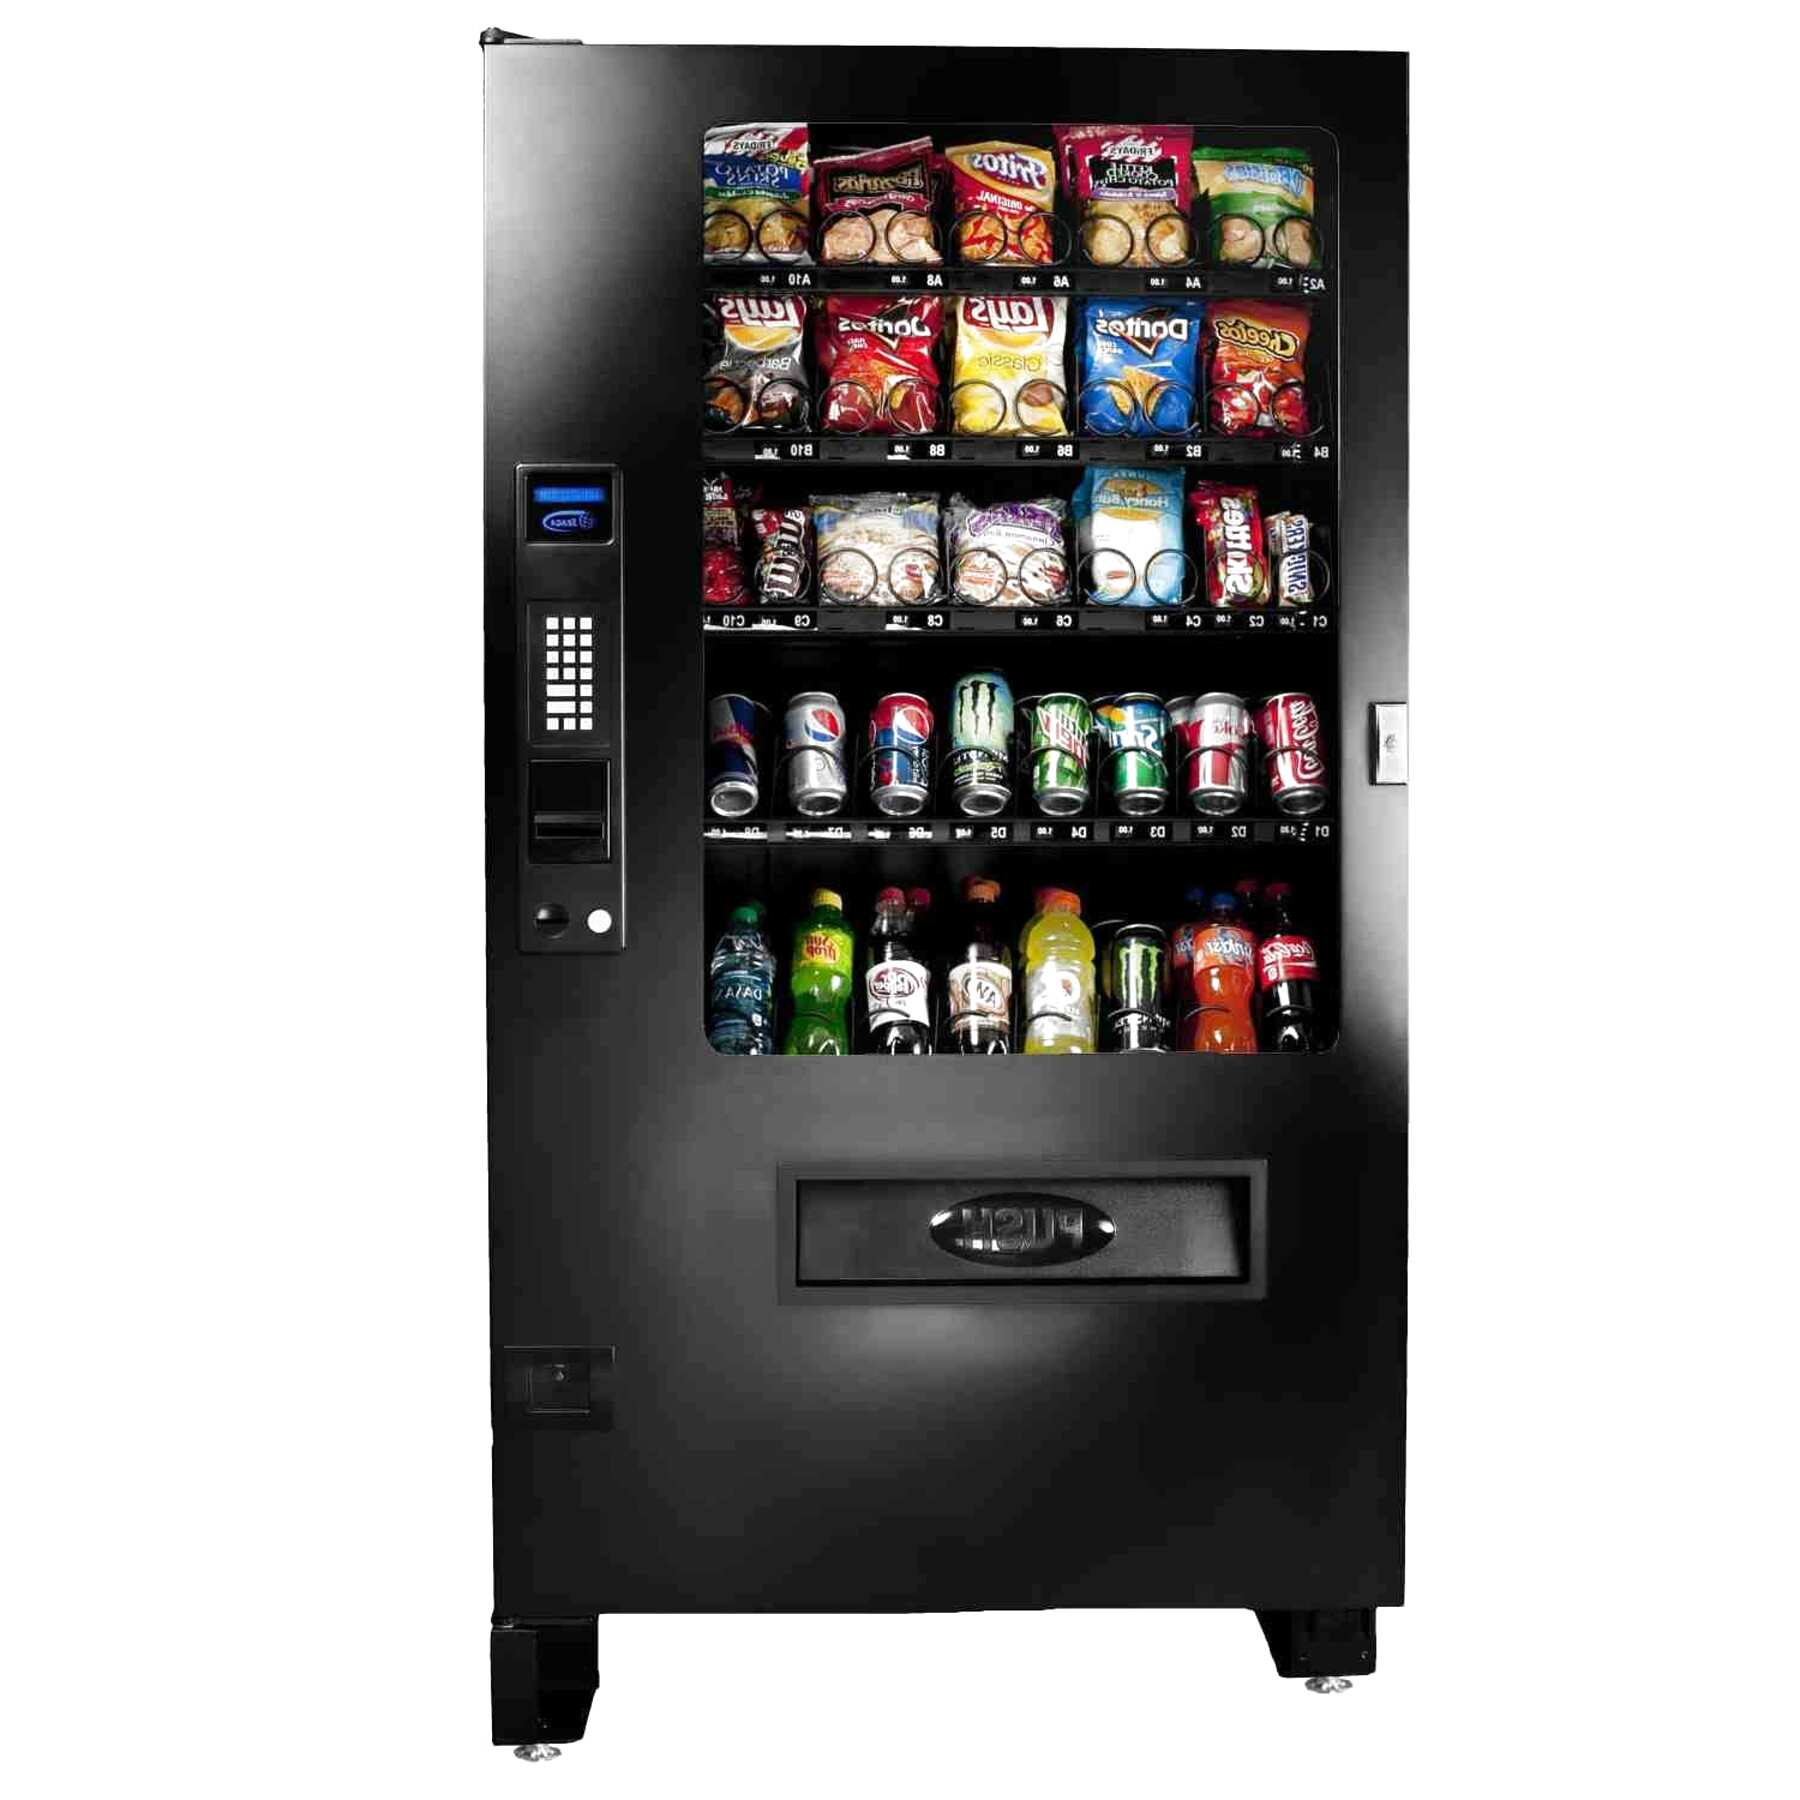 Seaga Vending Machine for sale | Only 4 left at -70%